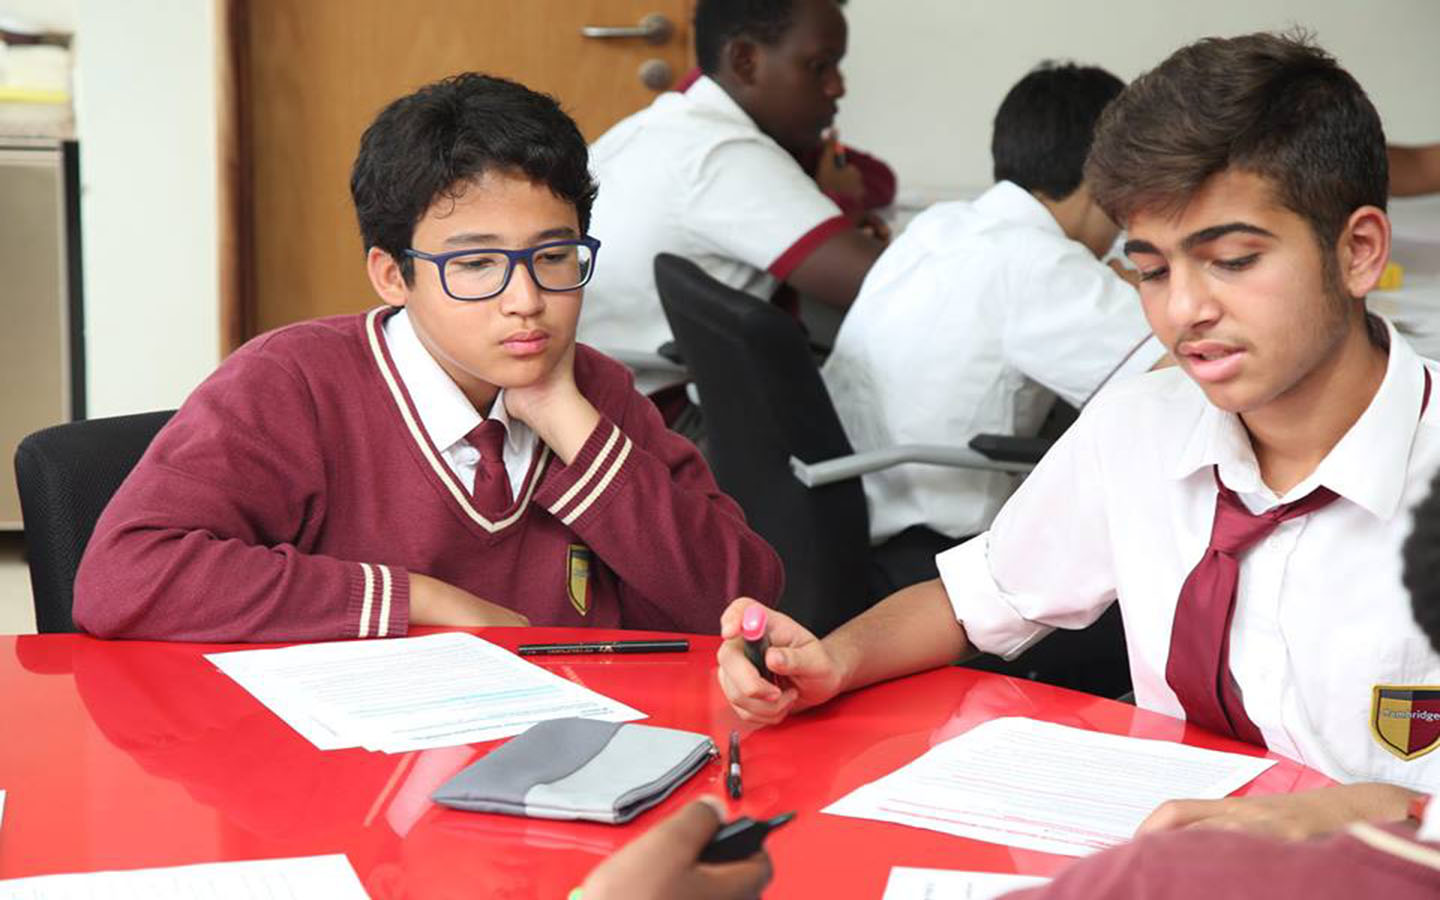 Students discussing ideas with each other at GEMS Cambridge International School)